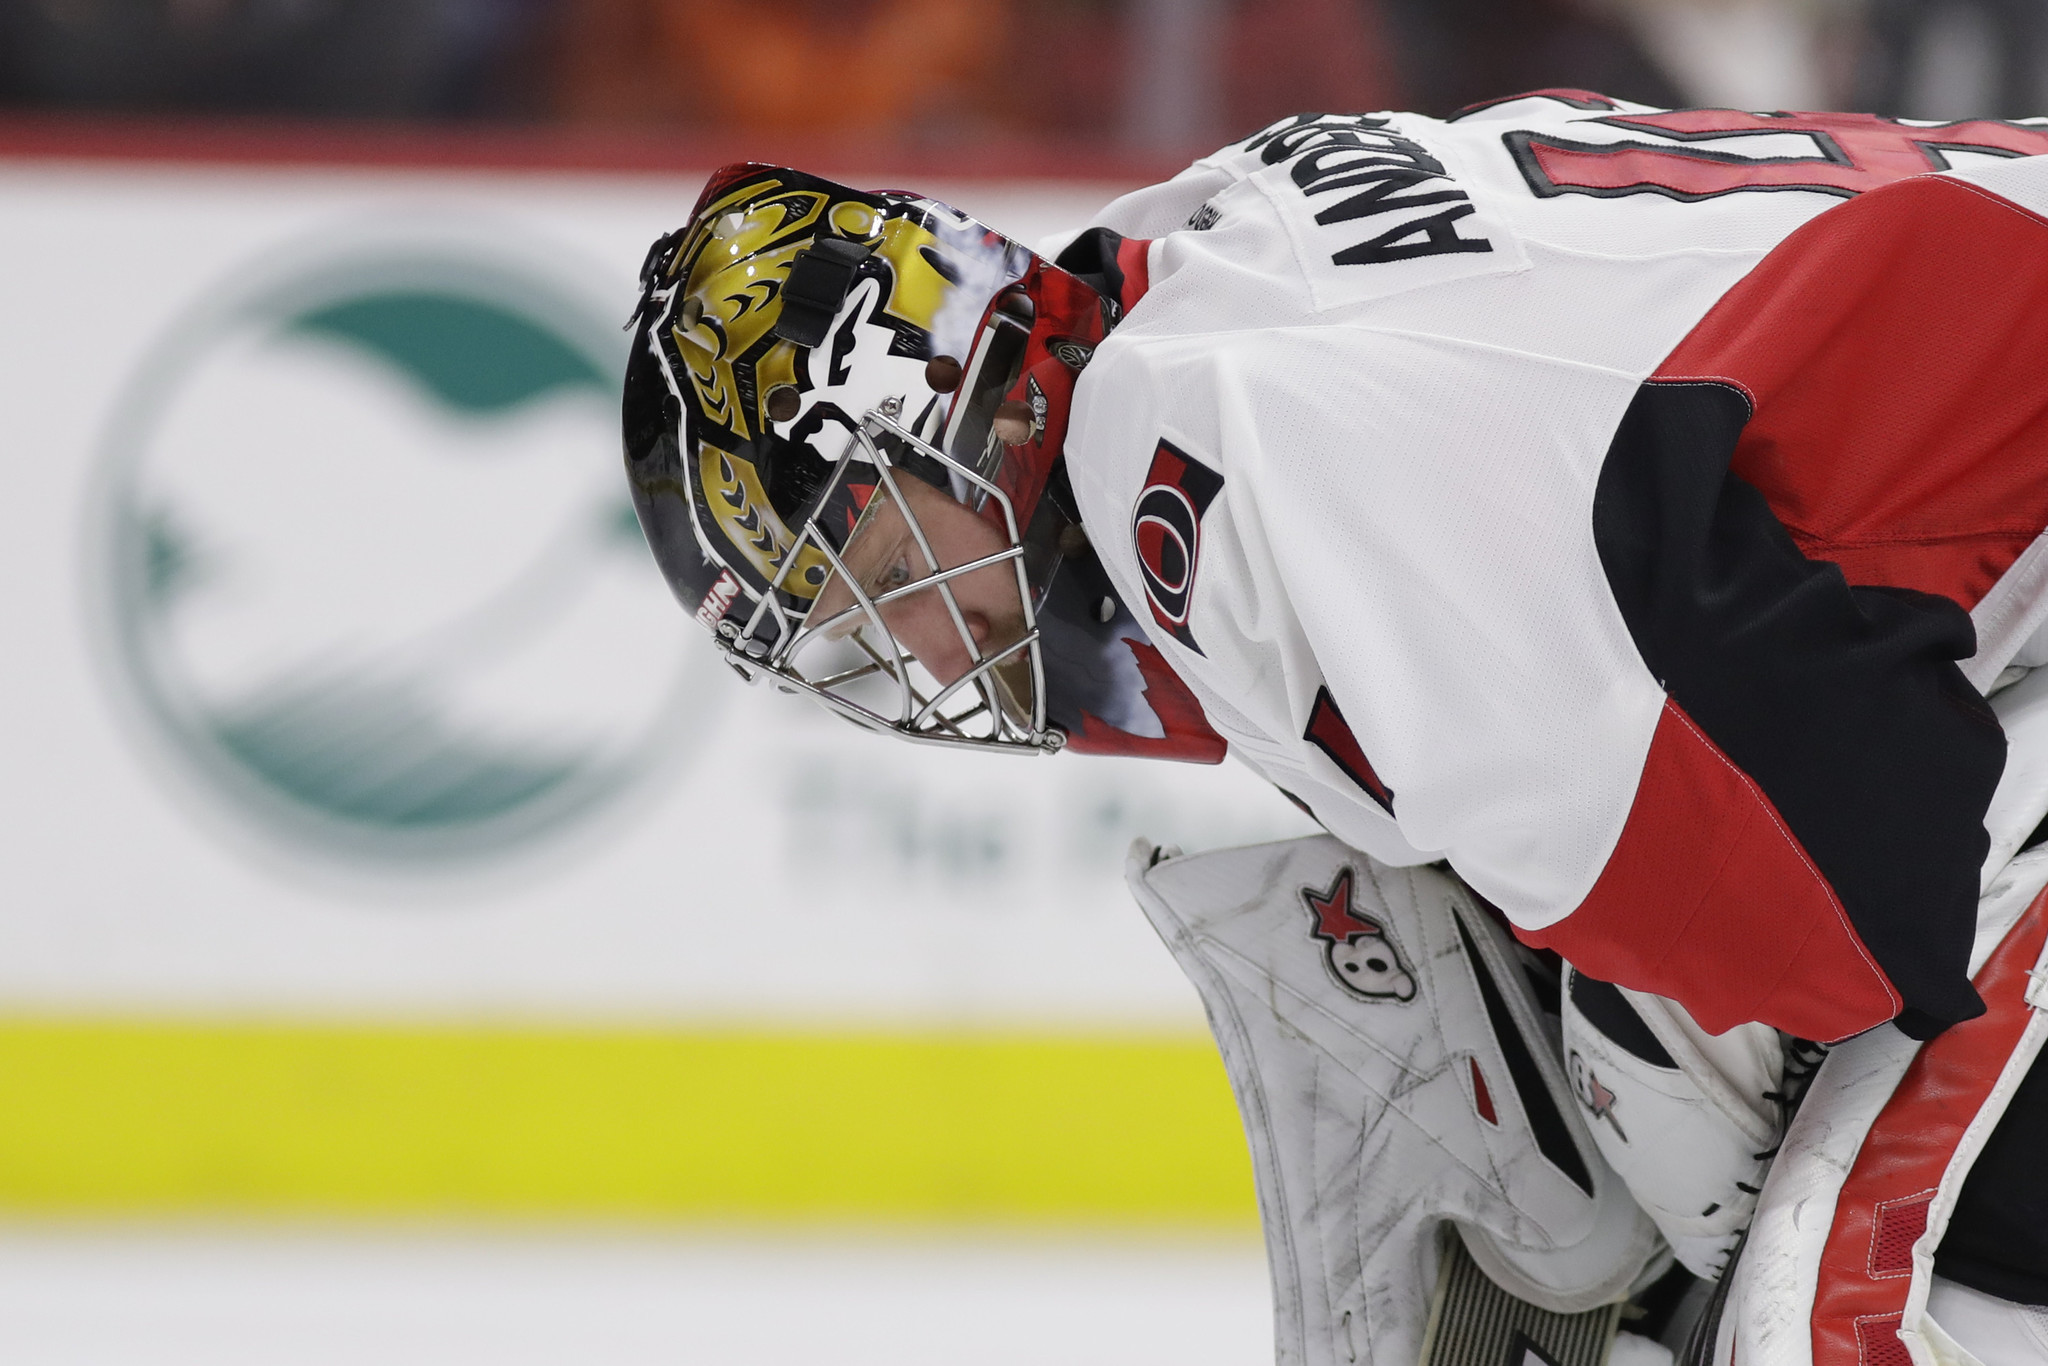 Sfl-senators-goalie-anderson-displaying-courage-on-and-off-ice-20161119